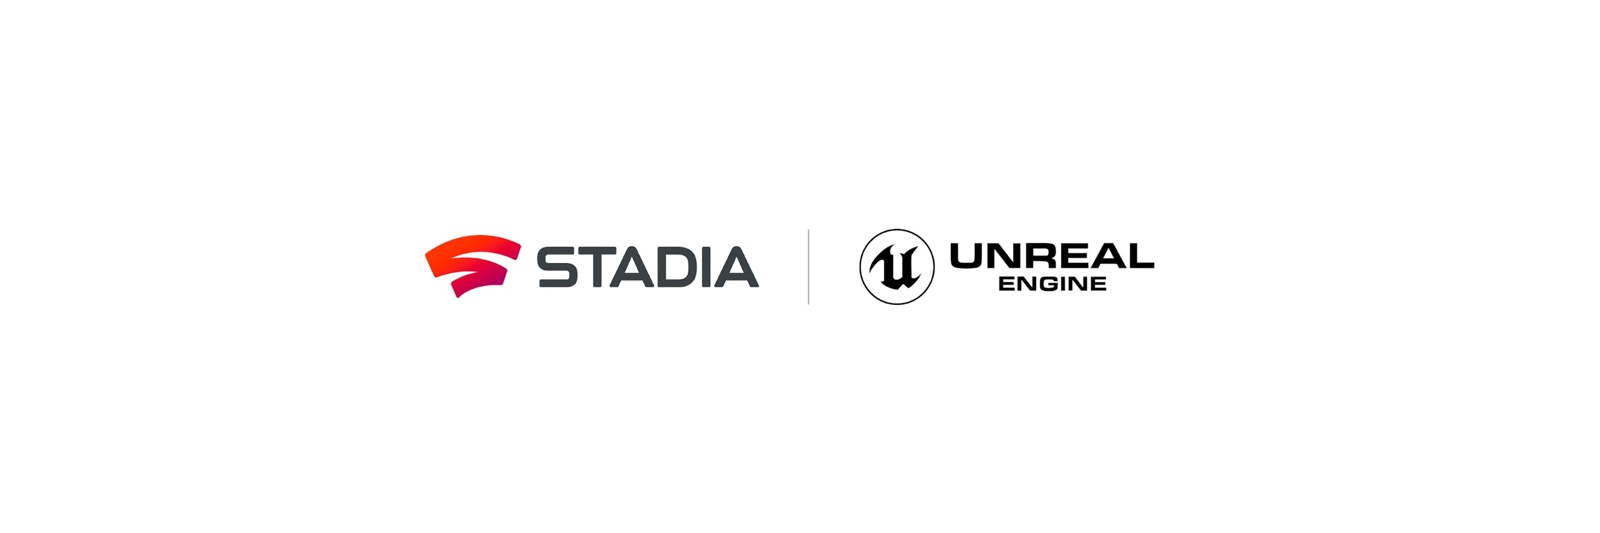 Unreal Engine Support for Stadia Now Available Image